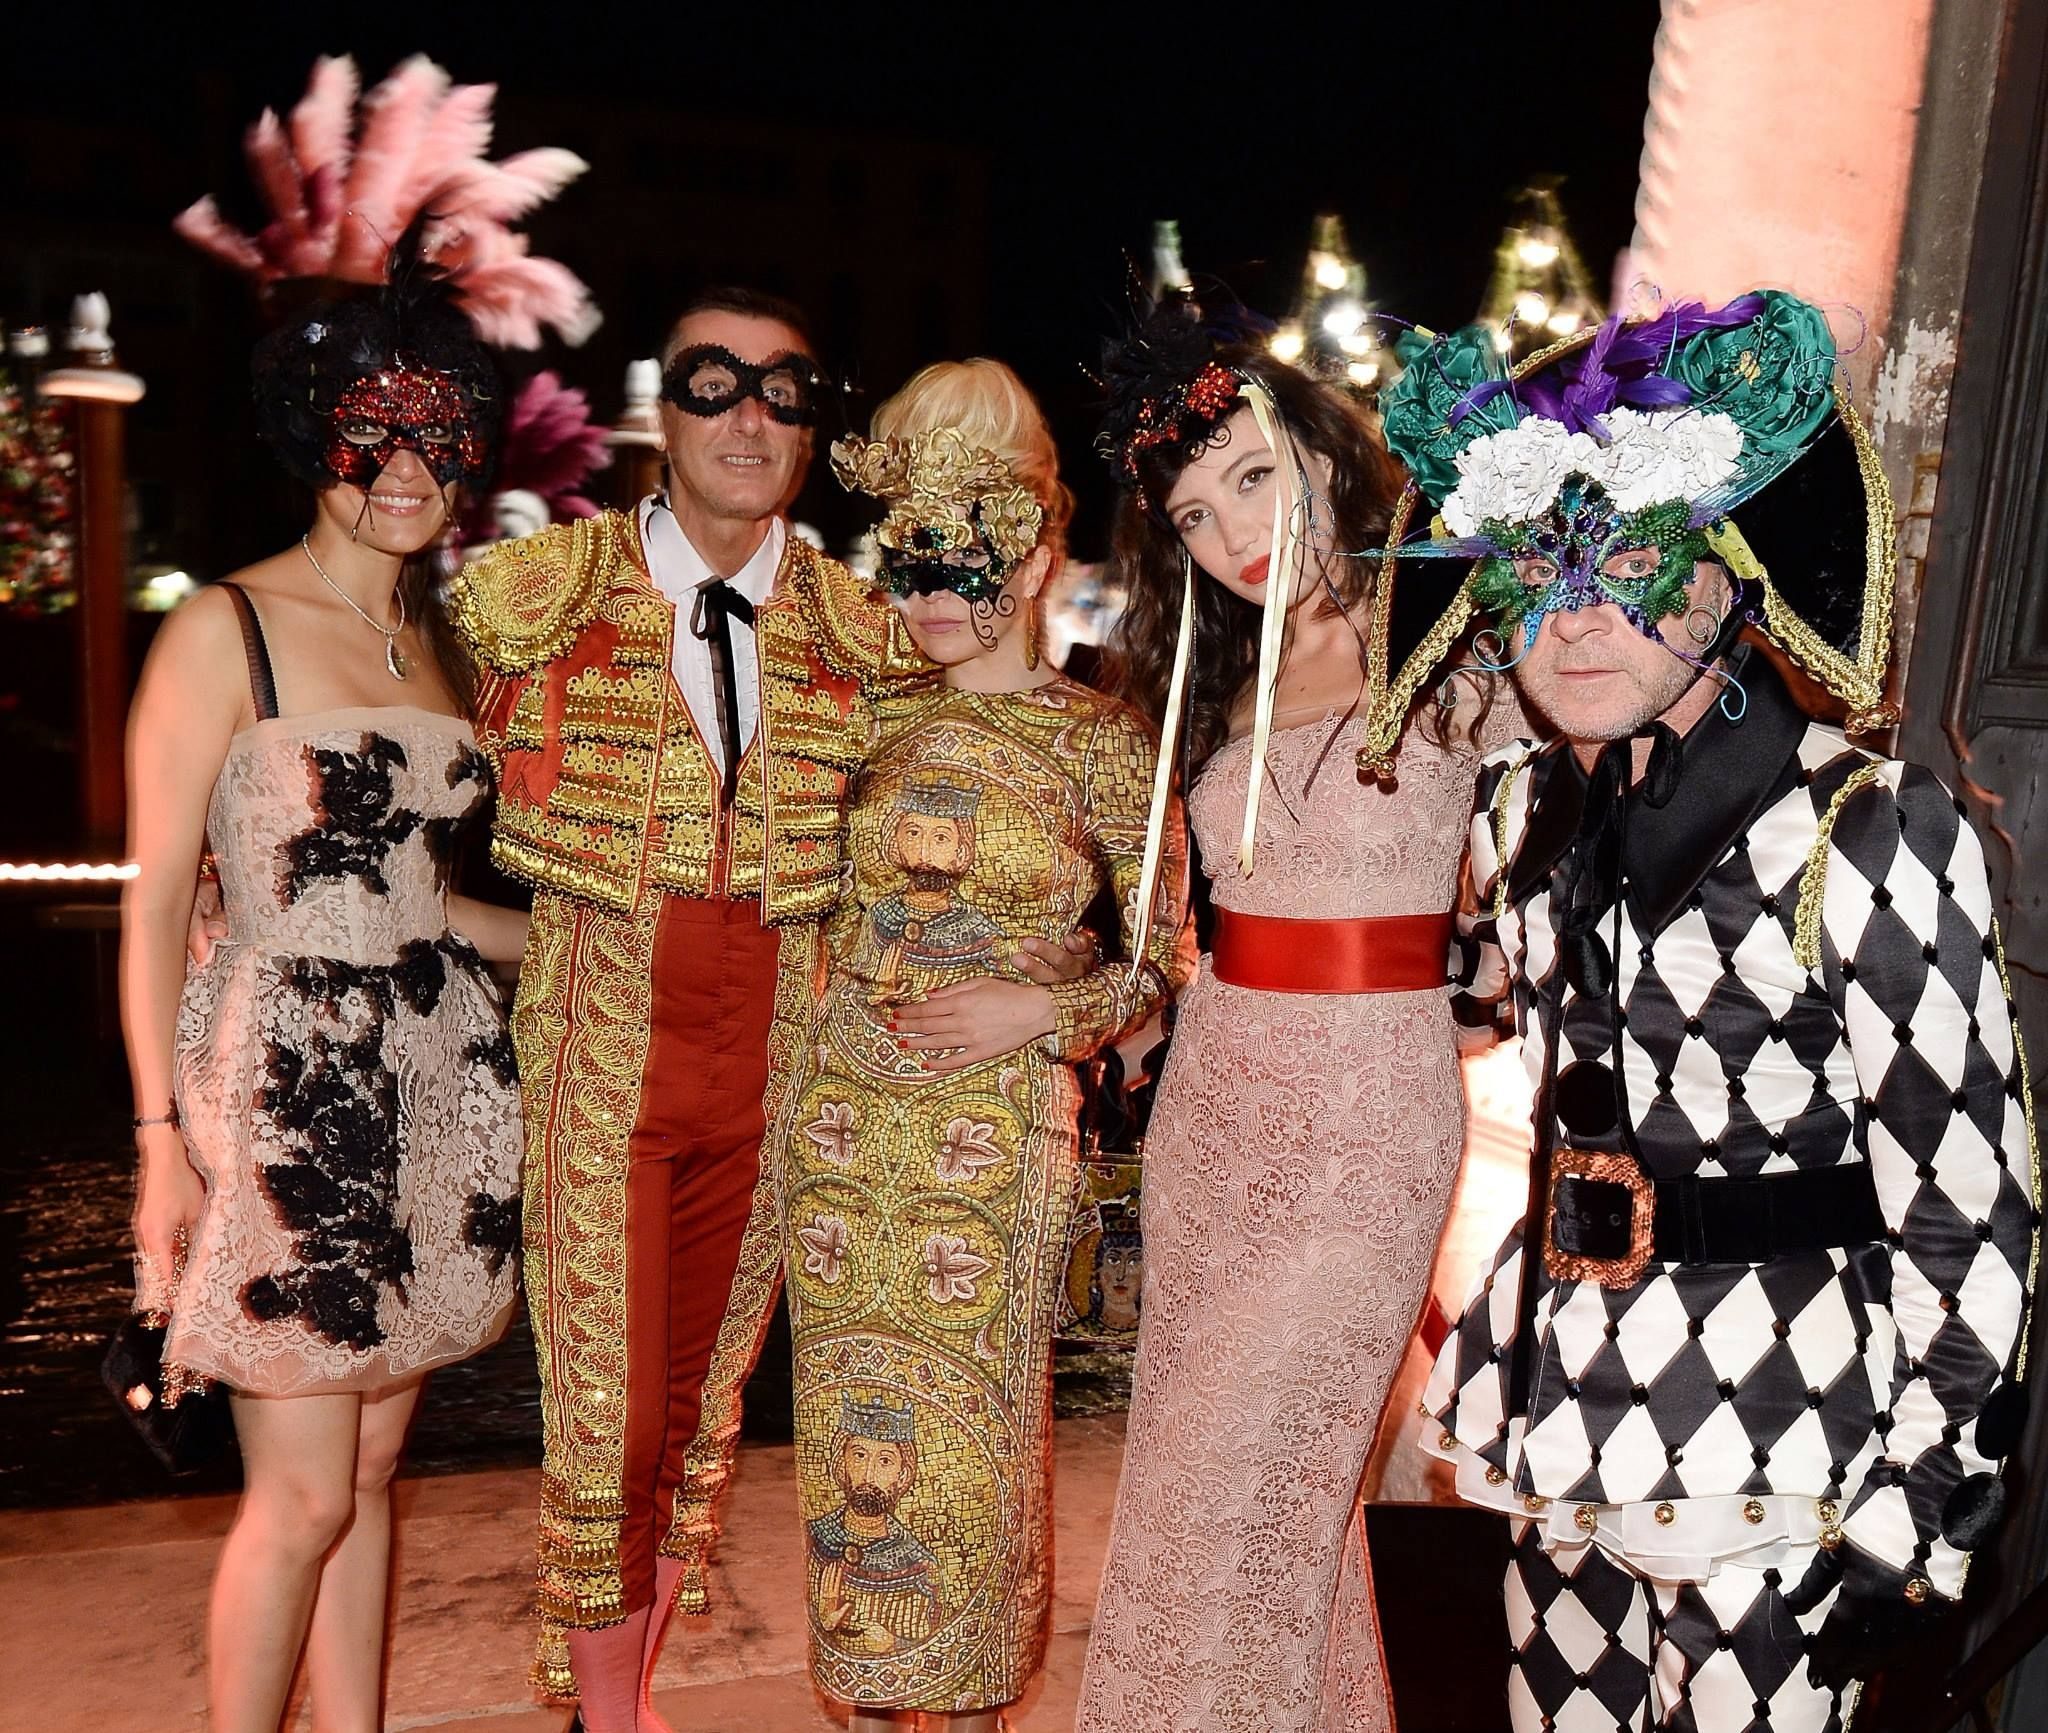 Venetian Style dolce masquerade ball in venetian style | fashionmention | news